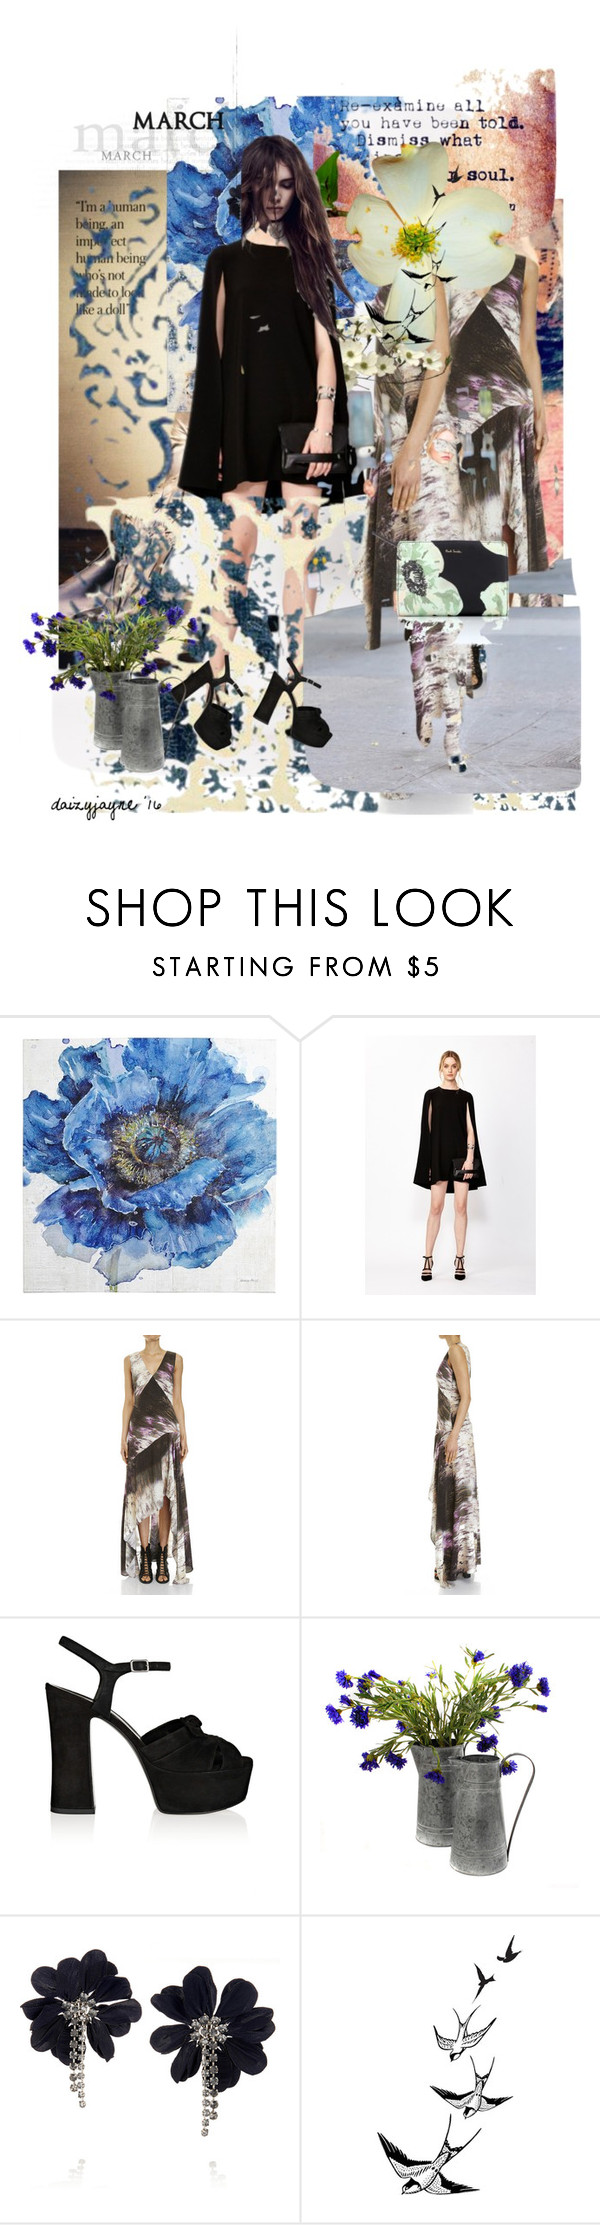 """""""march reflections"""" by daizyjayne ❤ liked on Polyvore featuring Emma Watson, Pier 1 Imports, Decjuba, Yves Saint Laurent, Lanvin, Paul Smith, willow and decuba"""